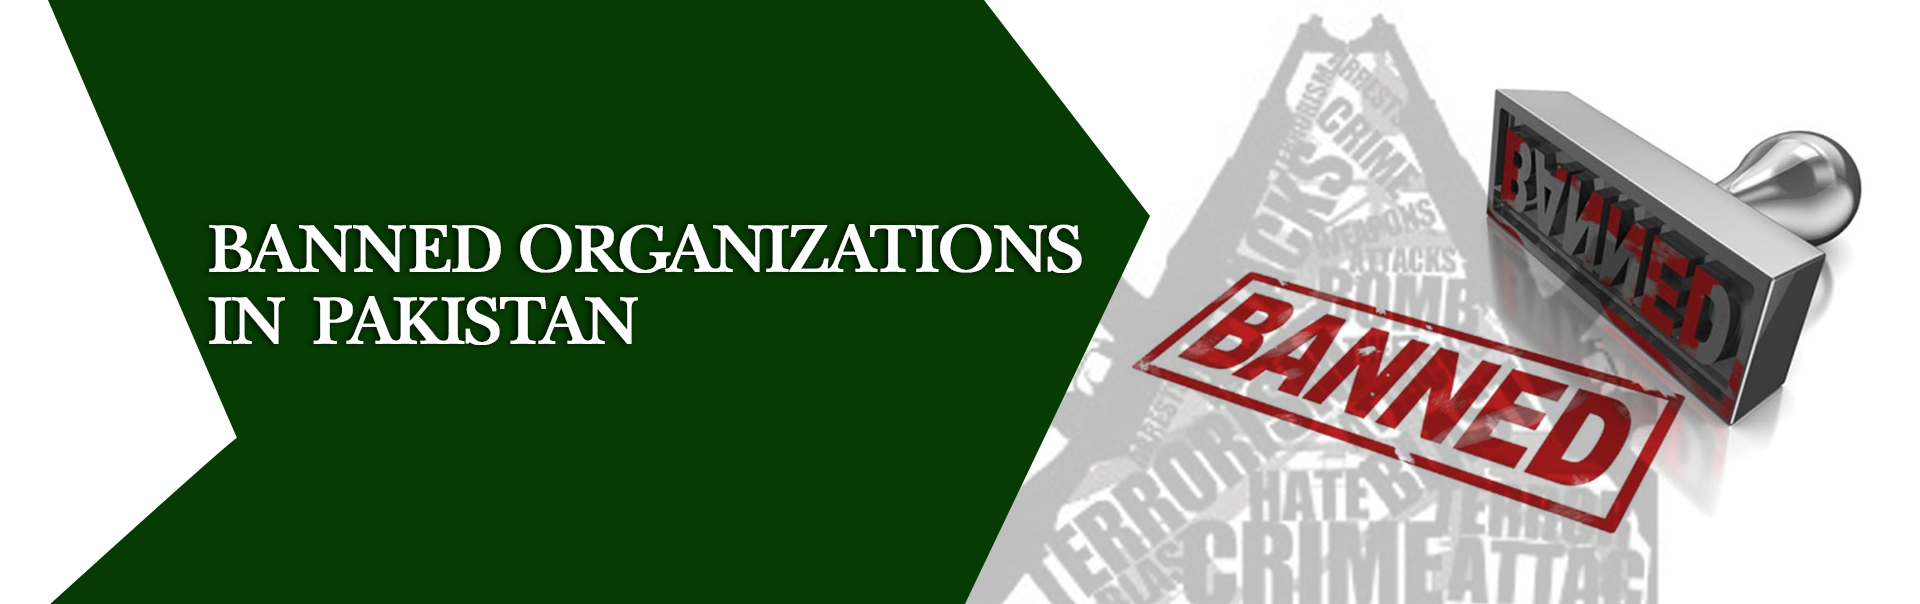 Extremist Organizations Banned In Pakistan Ministry of ...